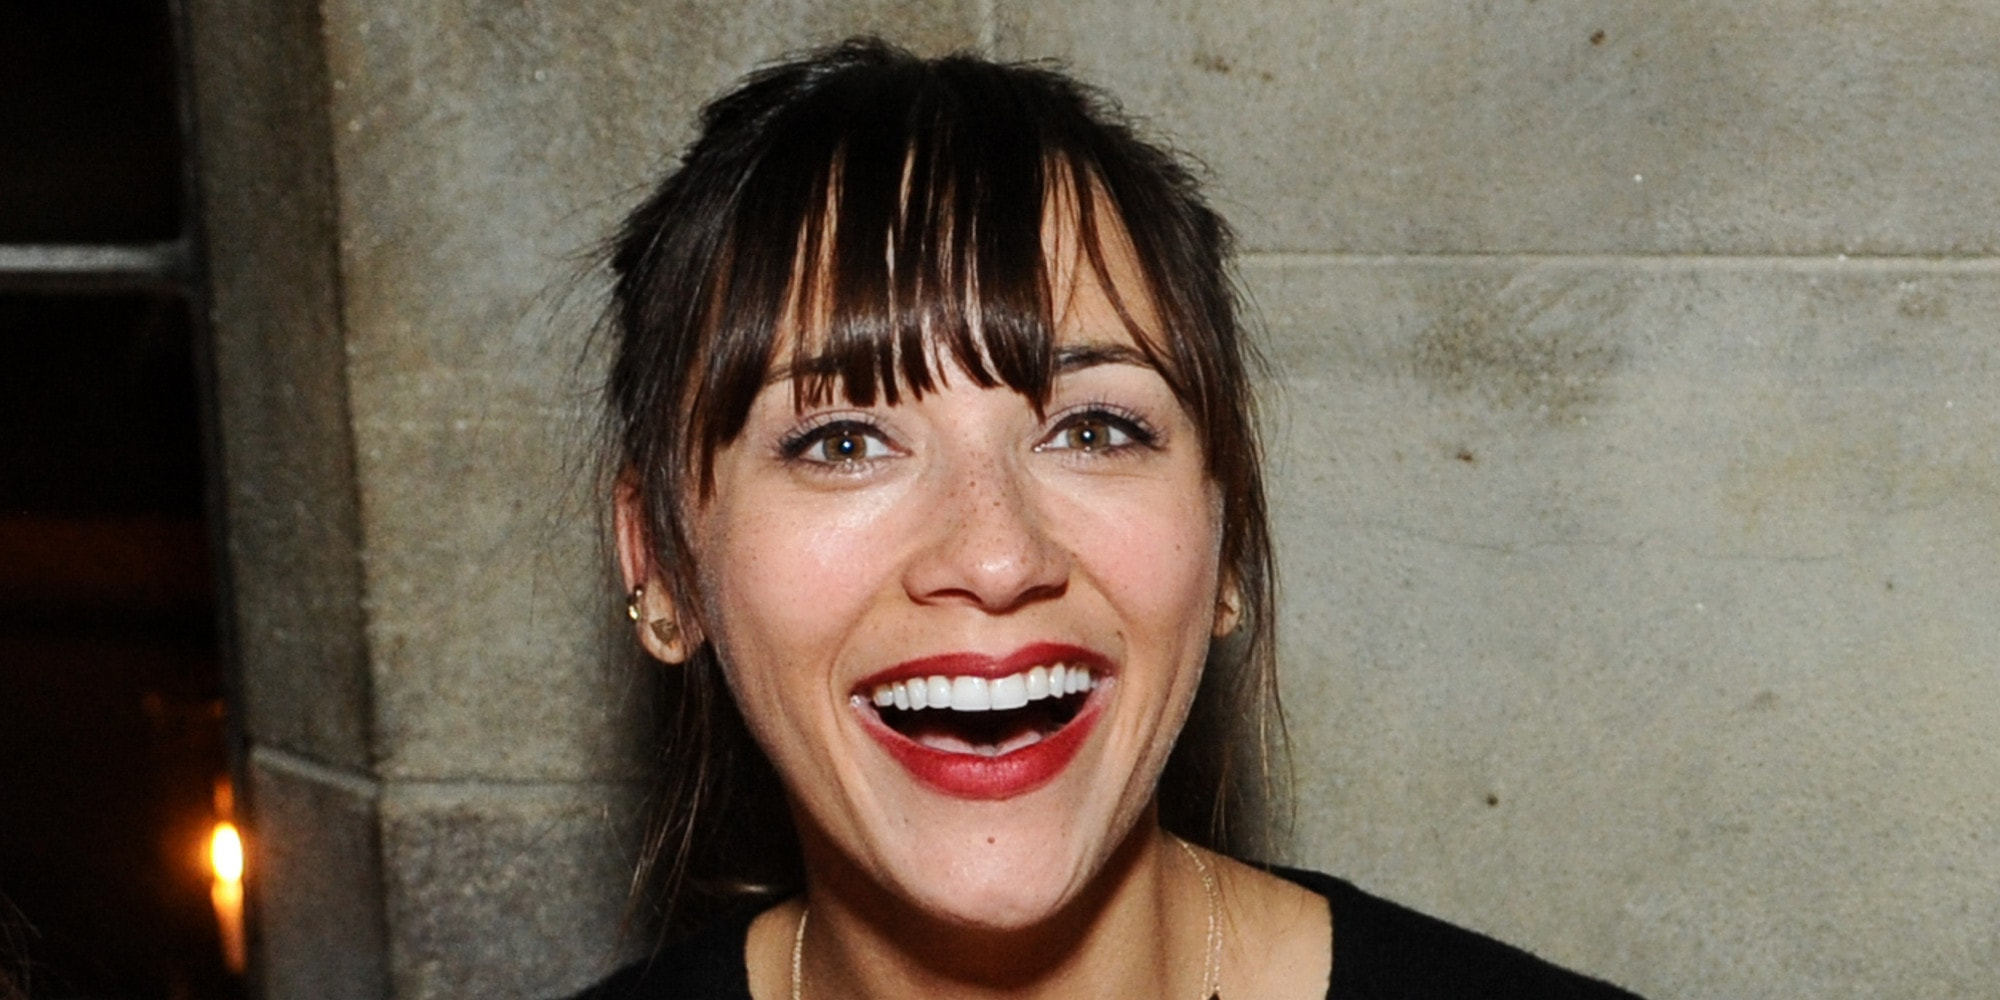 Rashida Jones Wallpapers hd